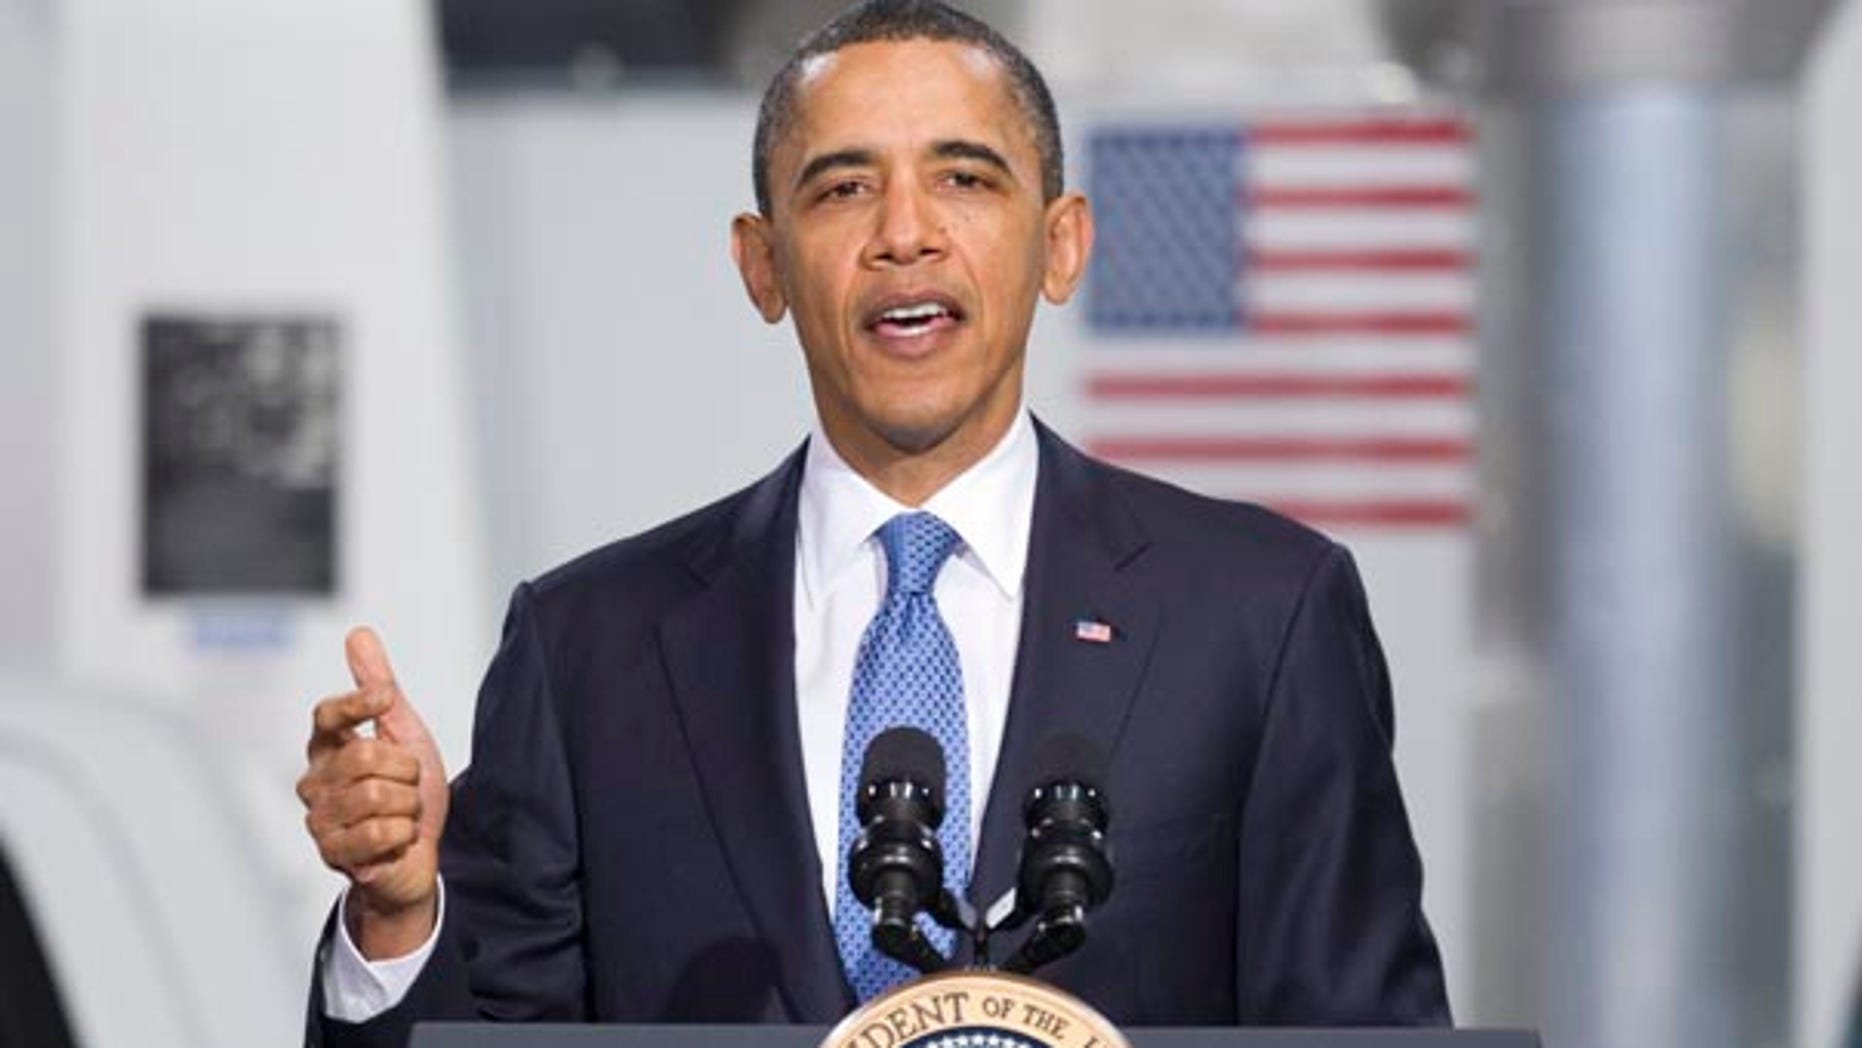 Friday: President Obama gestures while speaking at a UPS facility in Landover, Md.